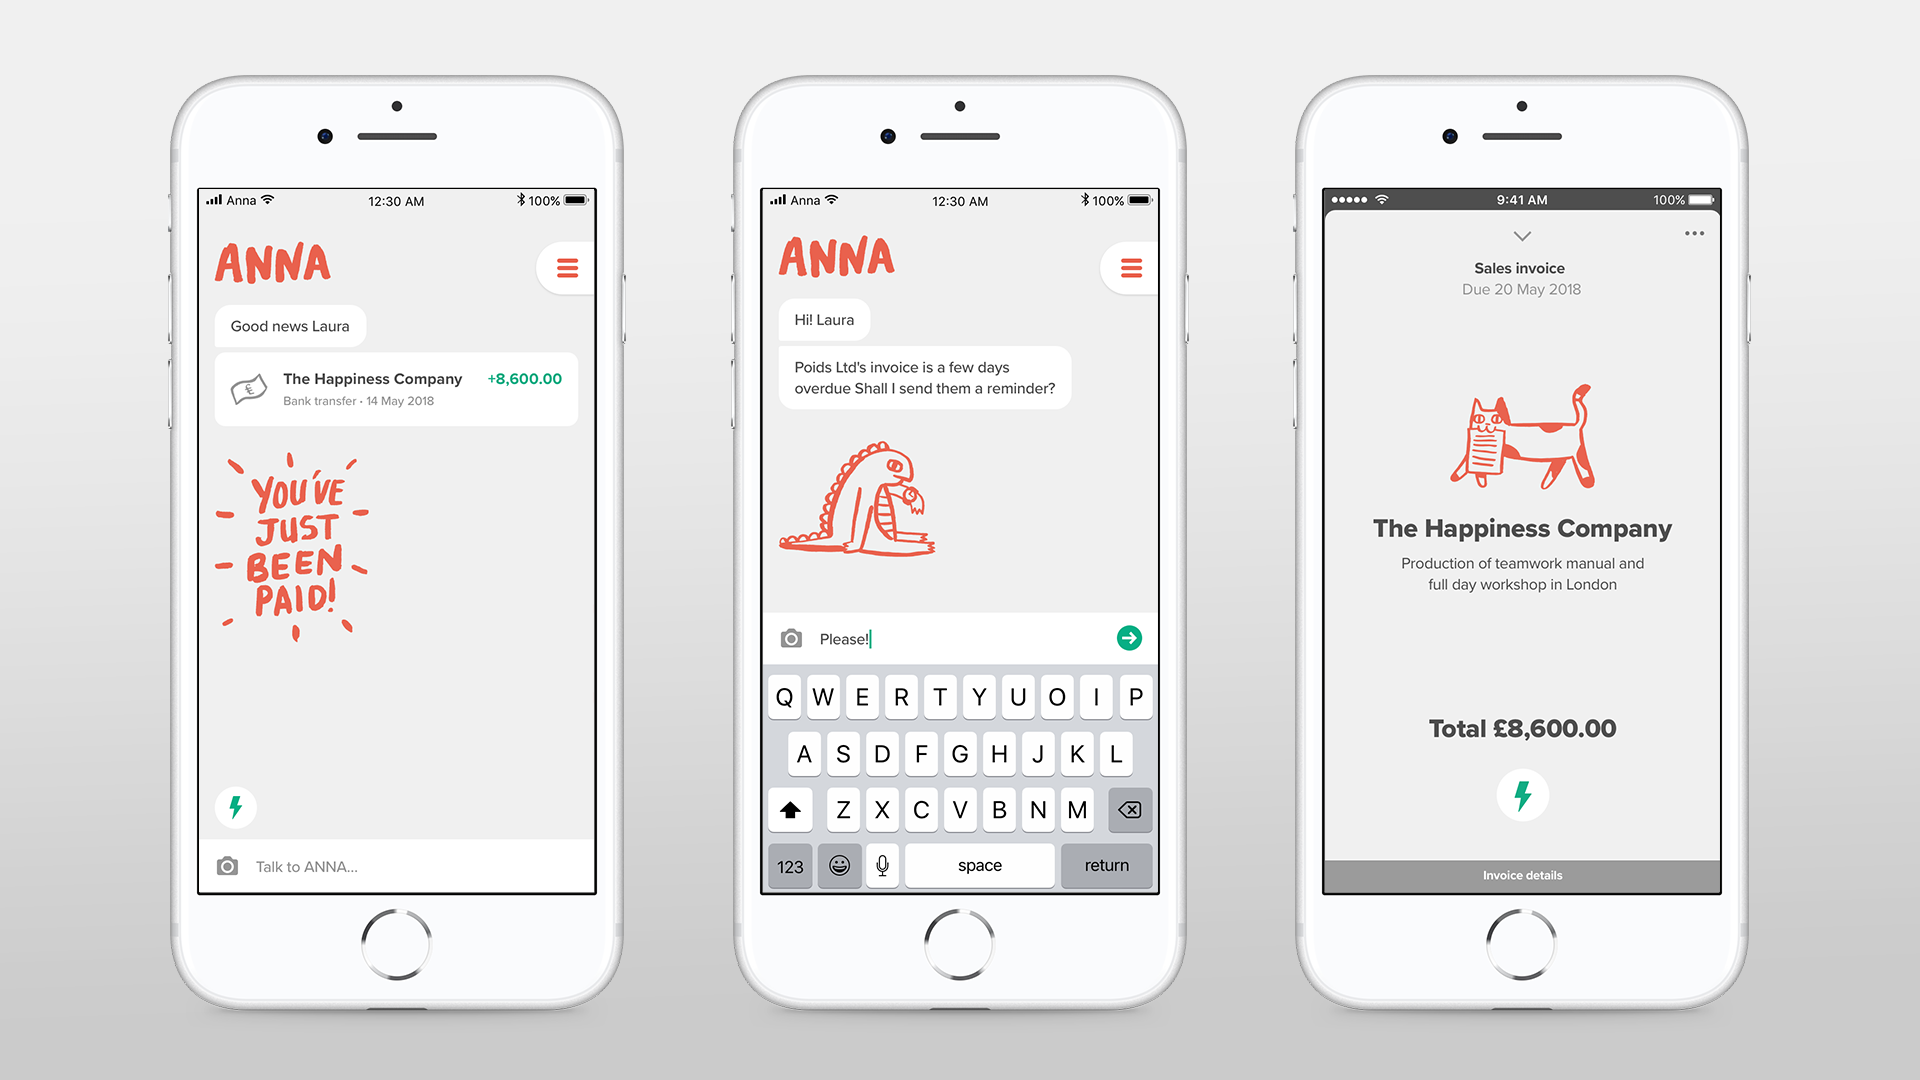 Mobile devices displaying ANNA messages and illustrations